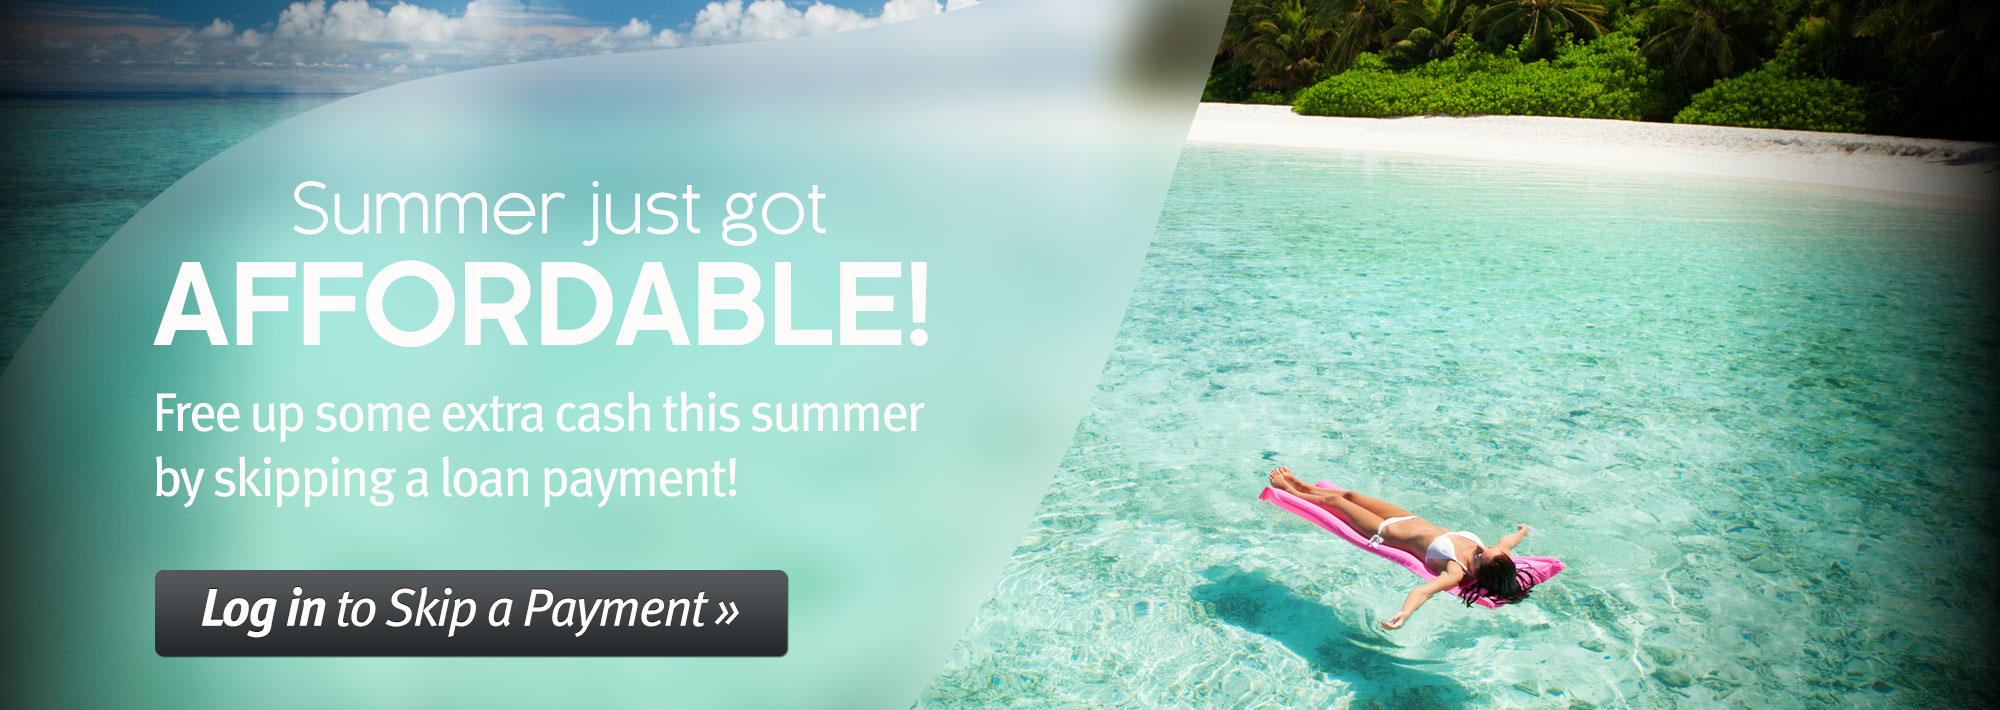 Summer just got affordable! Free up some extra cash this summer by skipping a loan payment. Log in to Skip a Payment